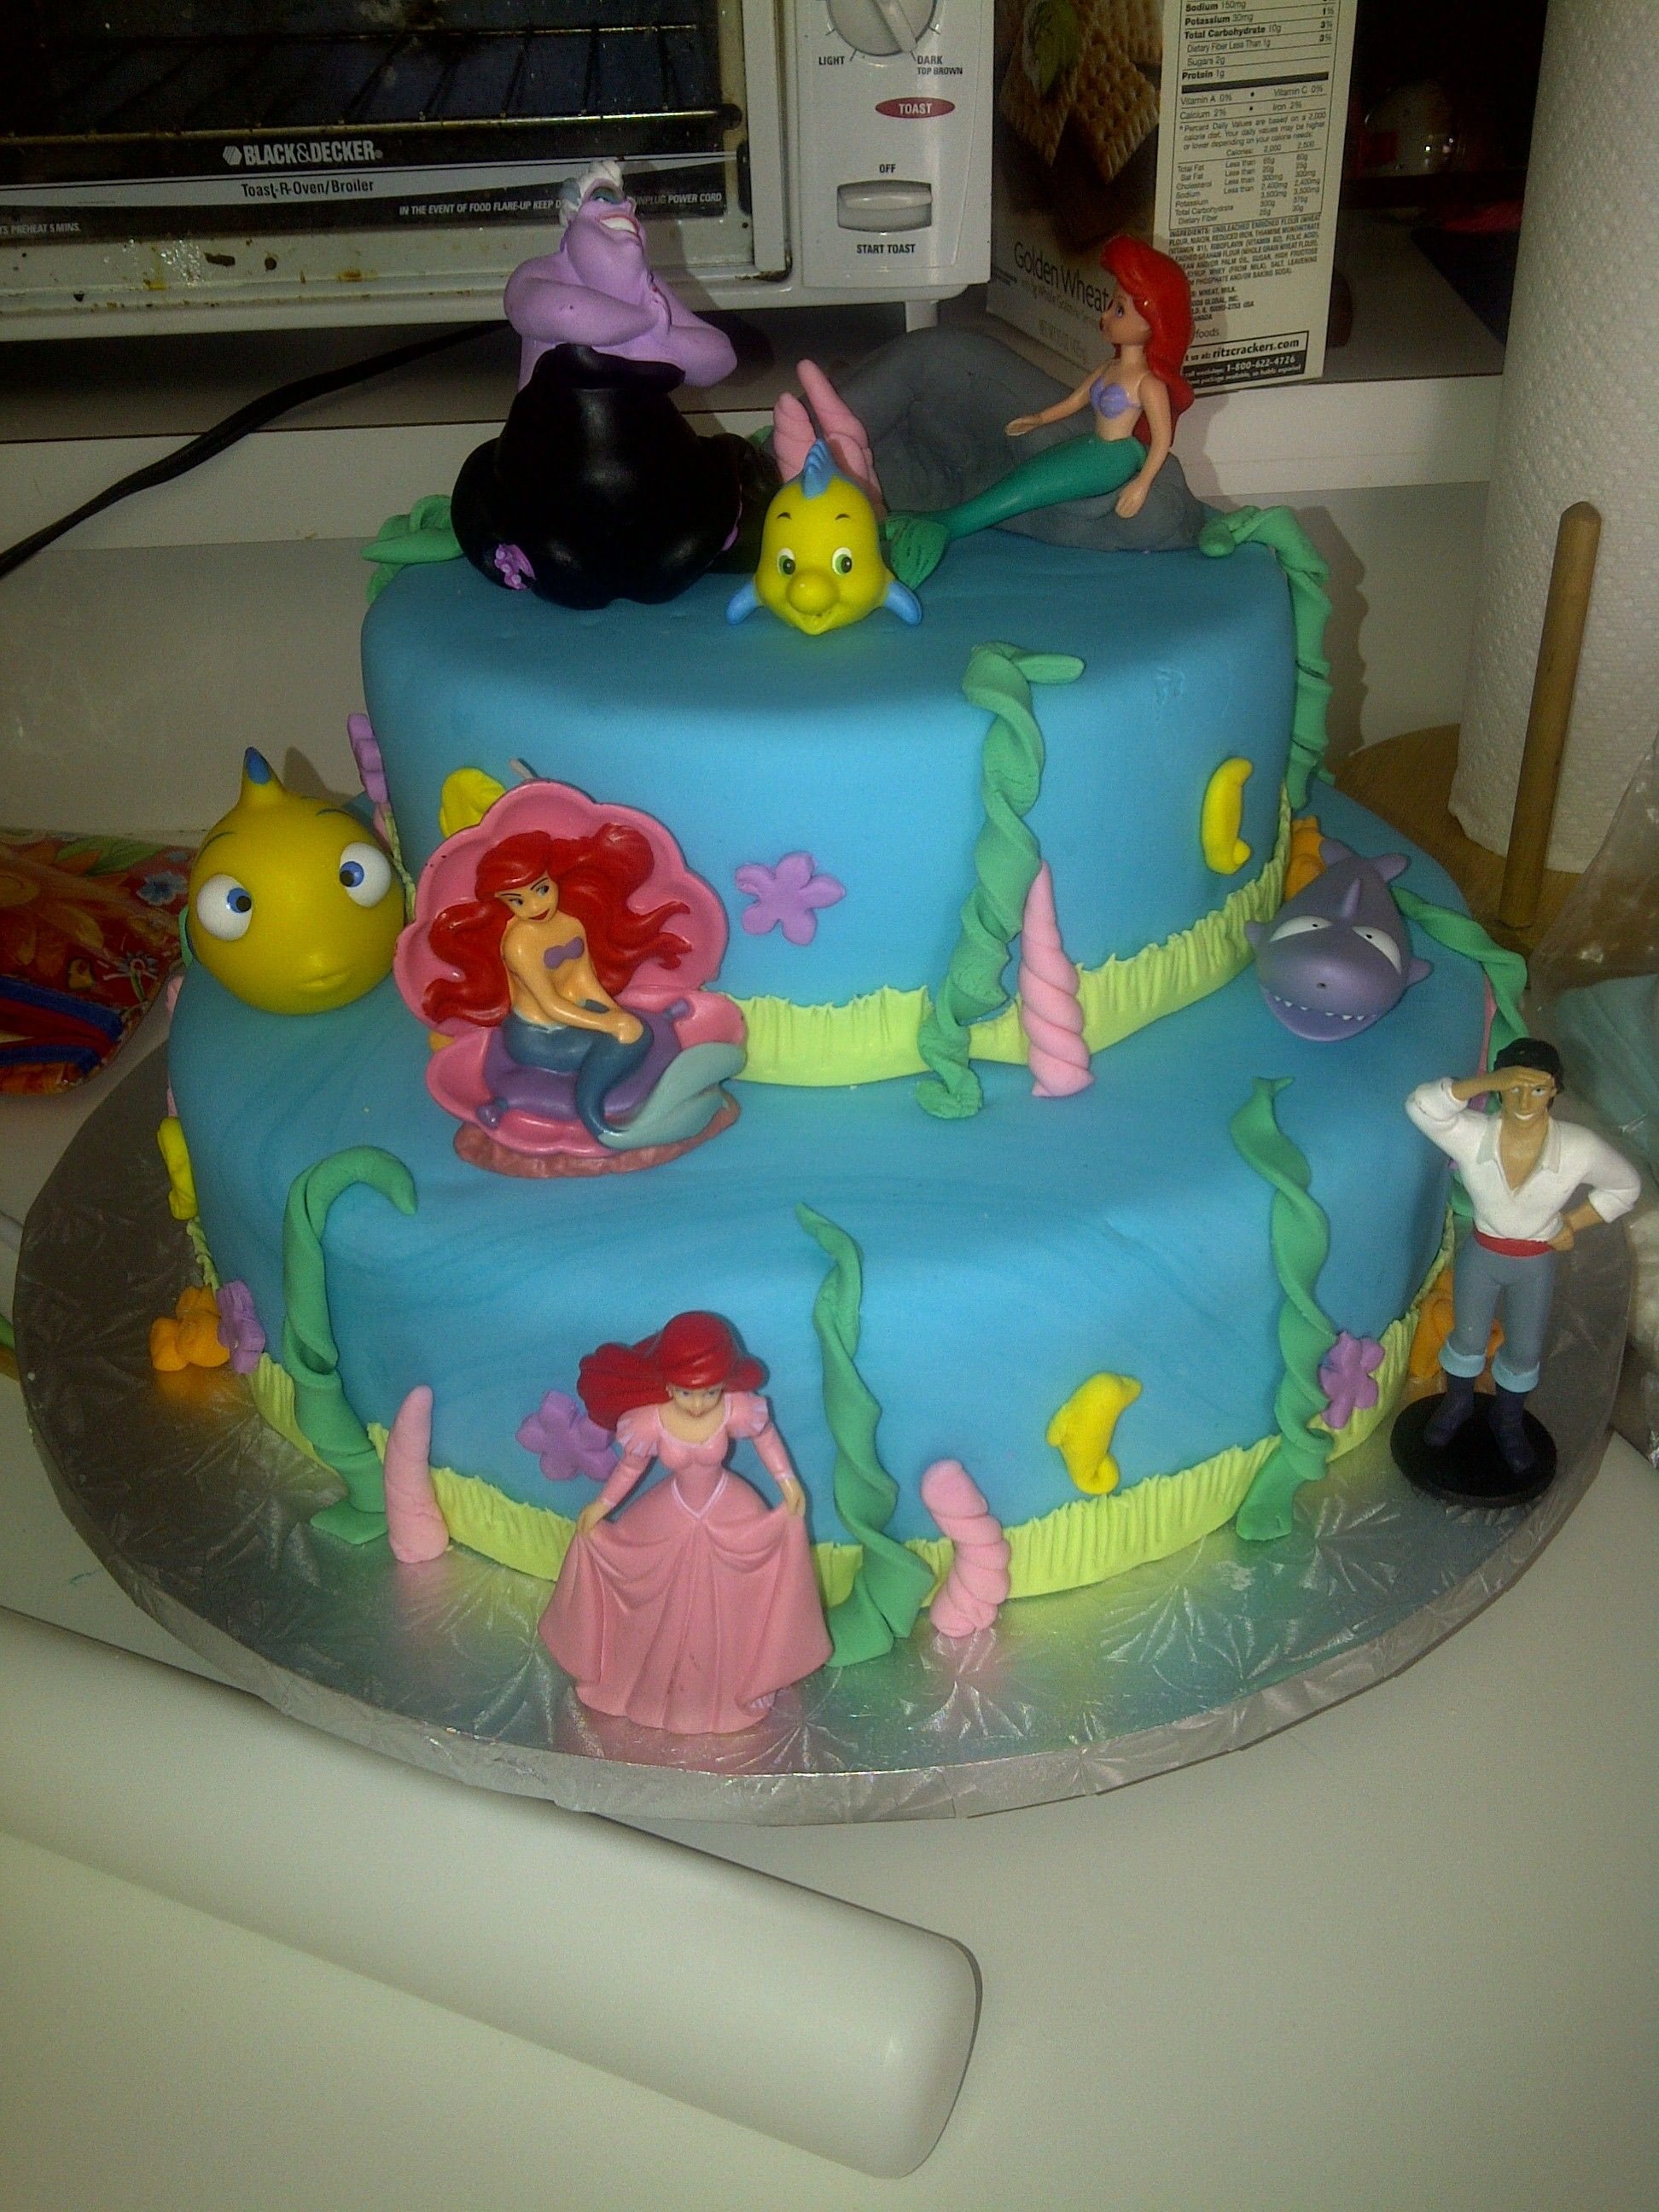 This was another fun cake to re-create if you have the toy figurines...